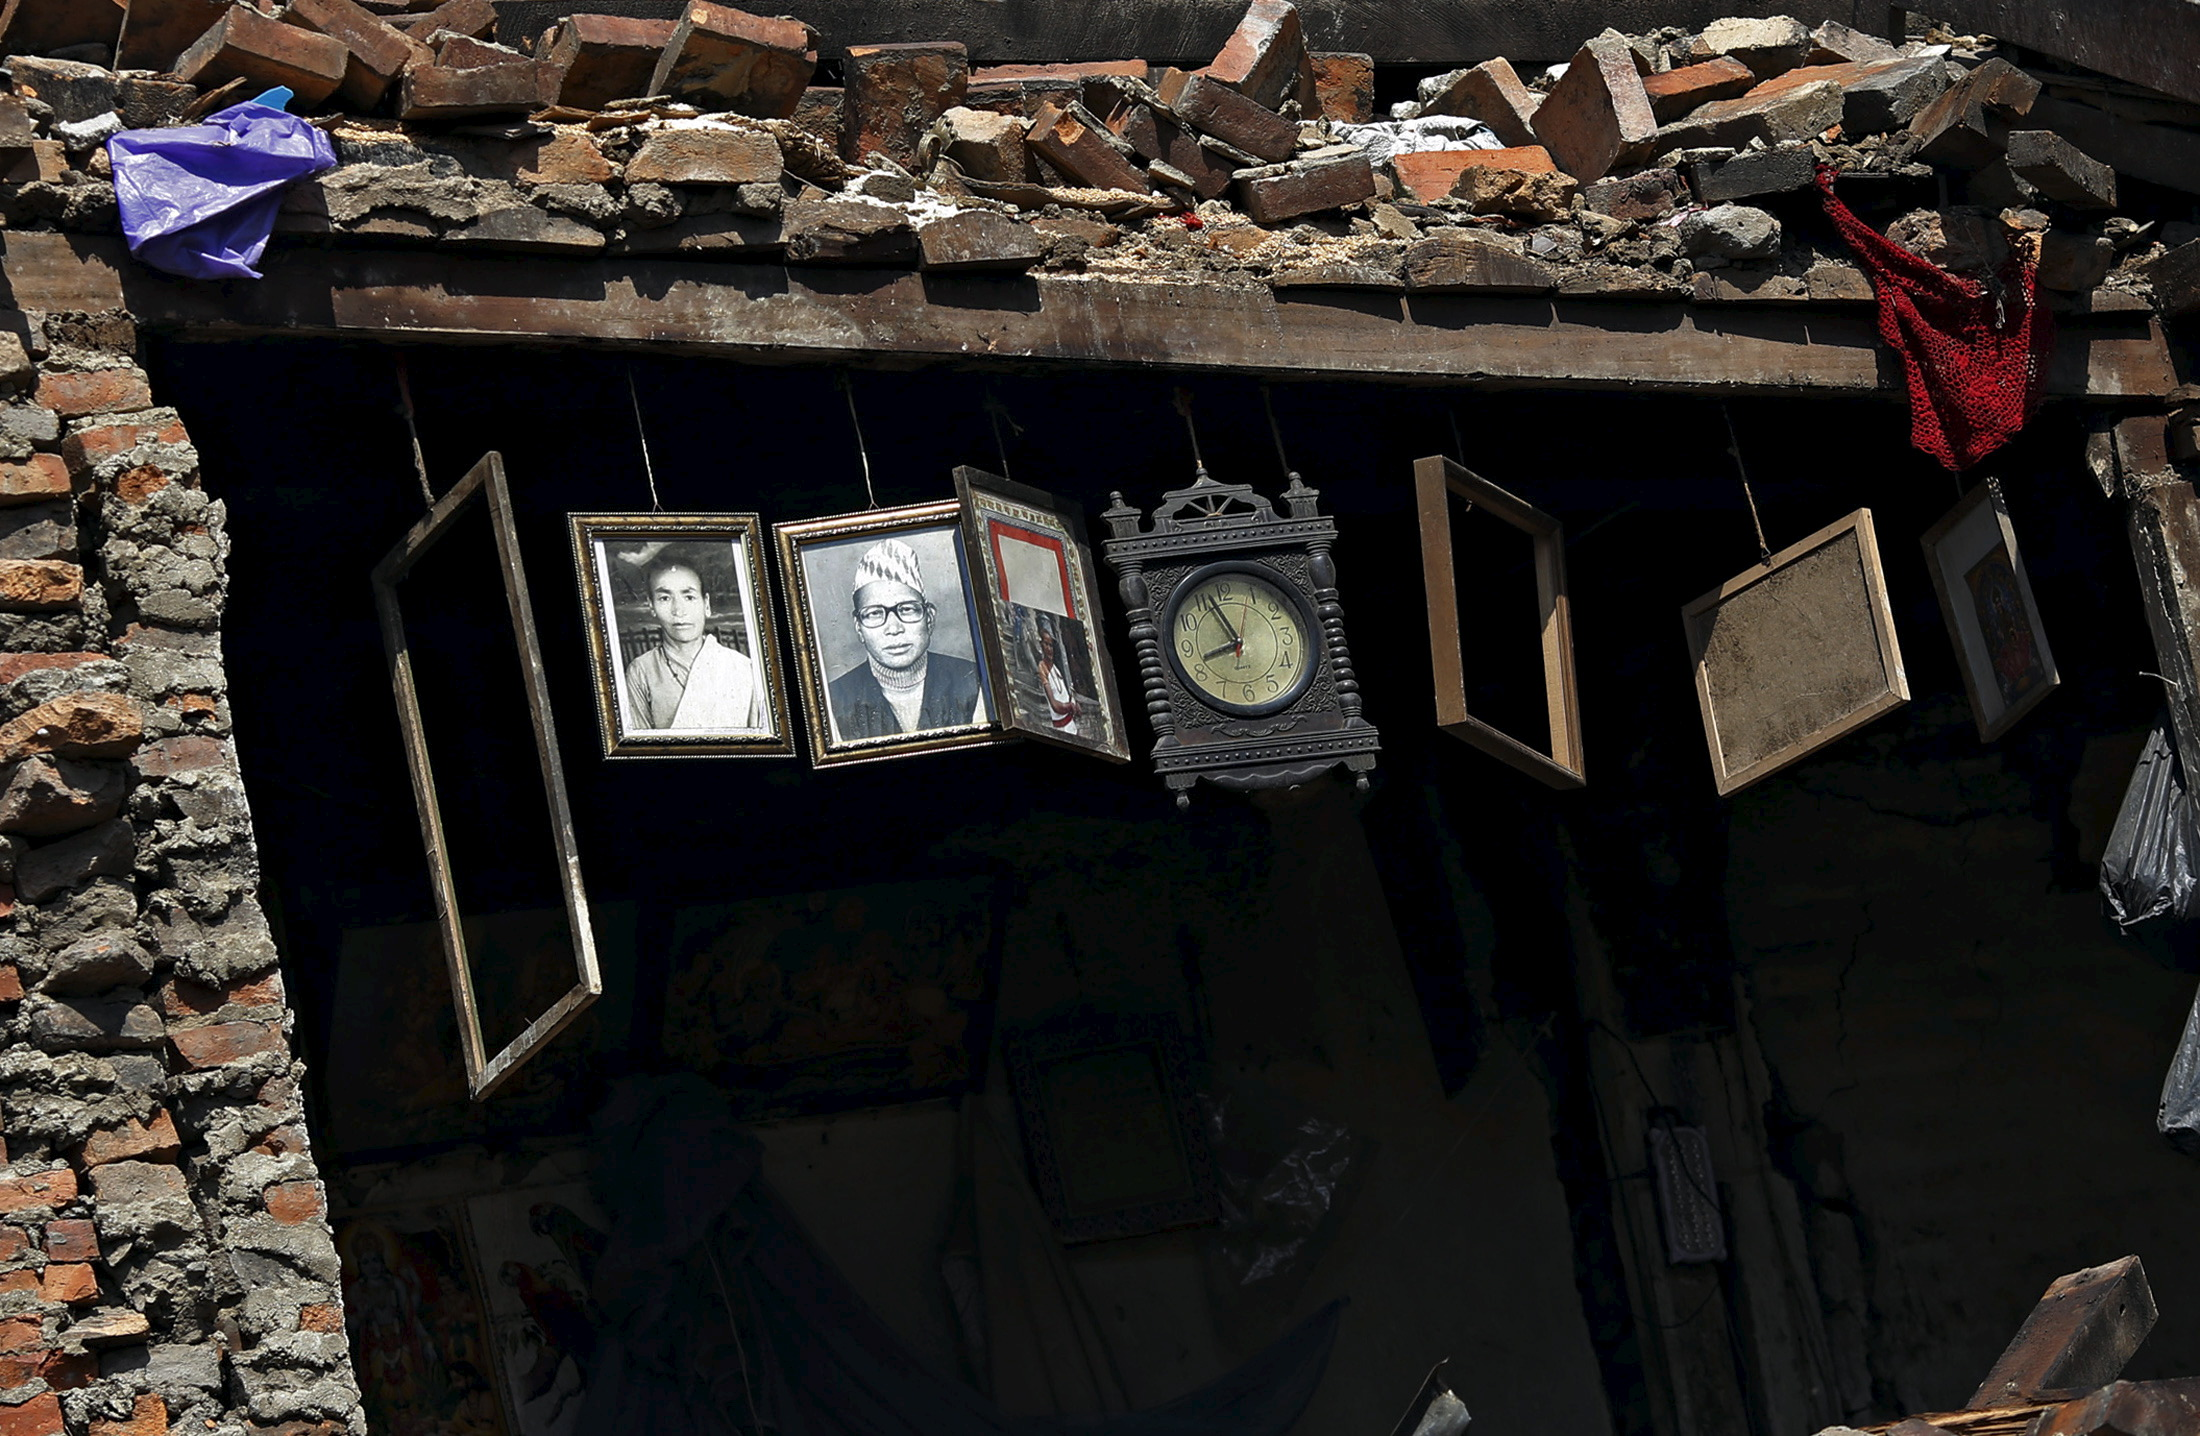 Framed photographs and a clock are seen hanging inside a damaged house after Saturday's earthquake in Bhaktapur, Nepal, on Monday. Photo by Adnan Abidi/Reuters